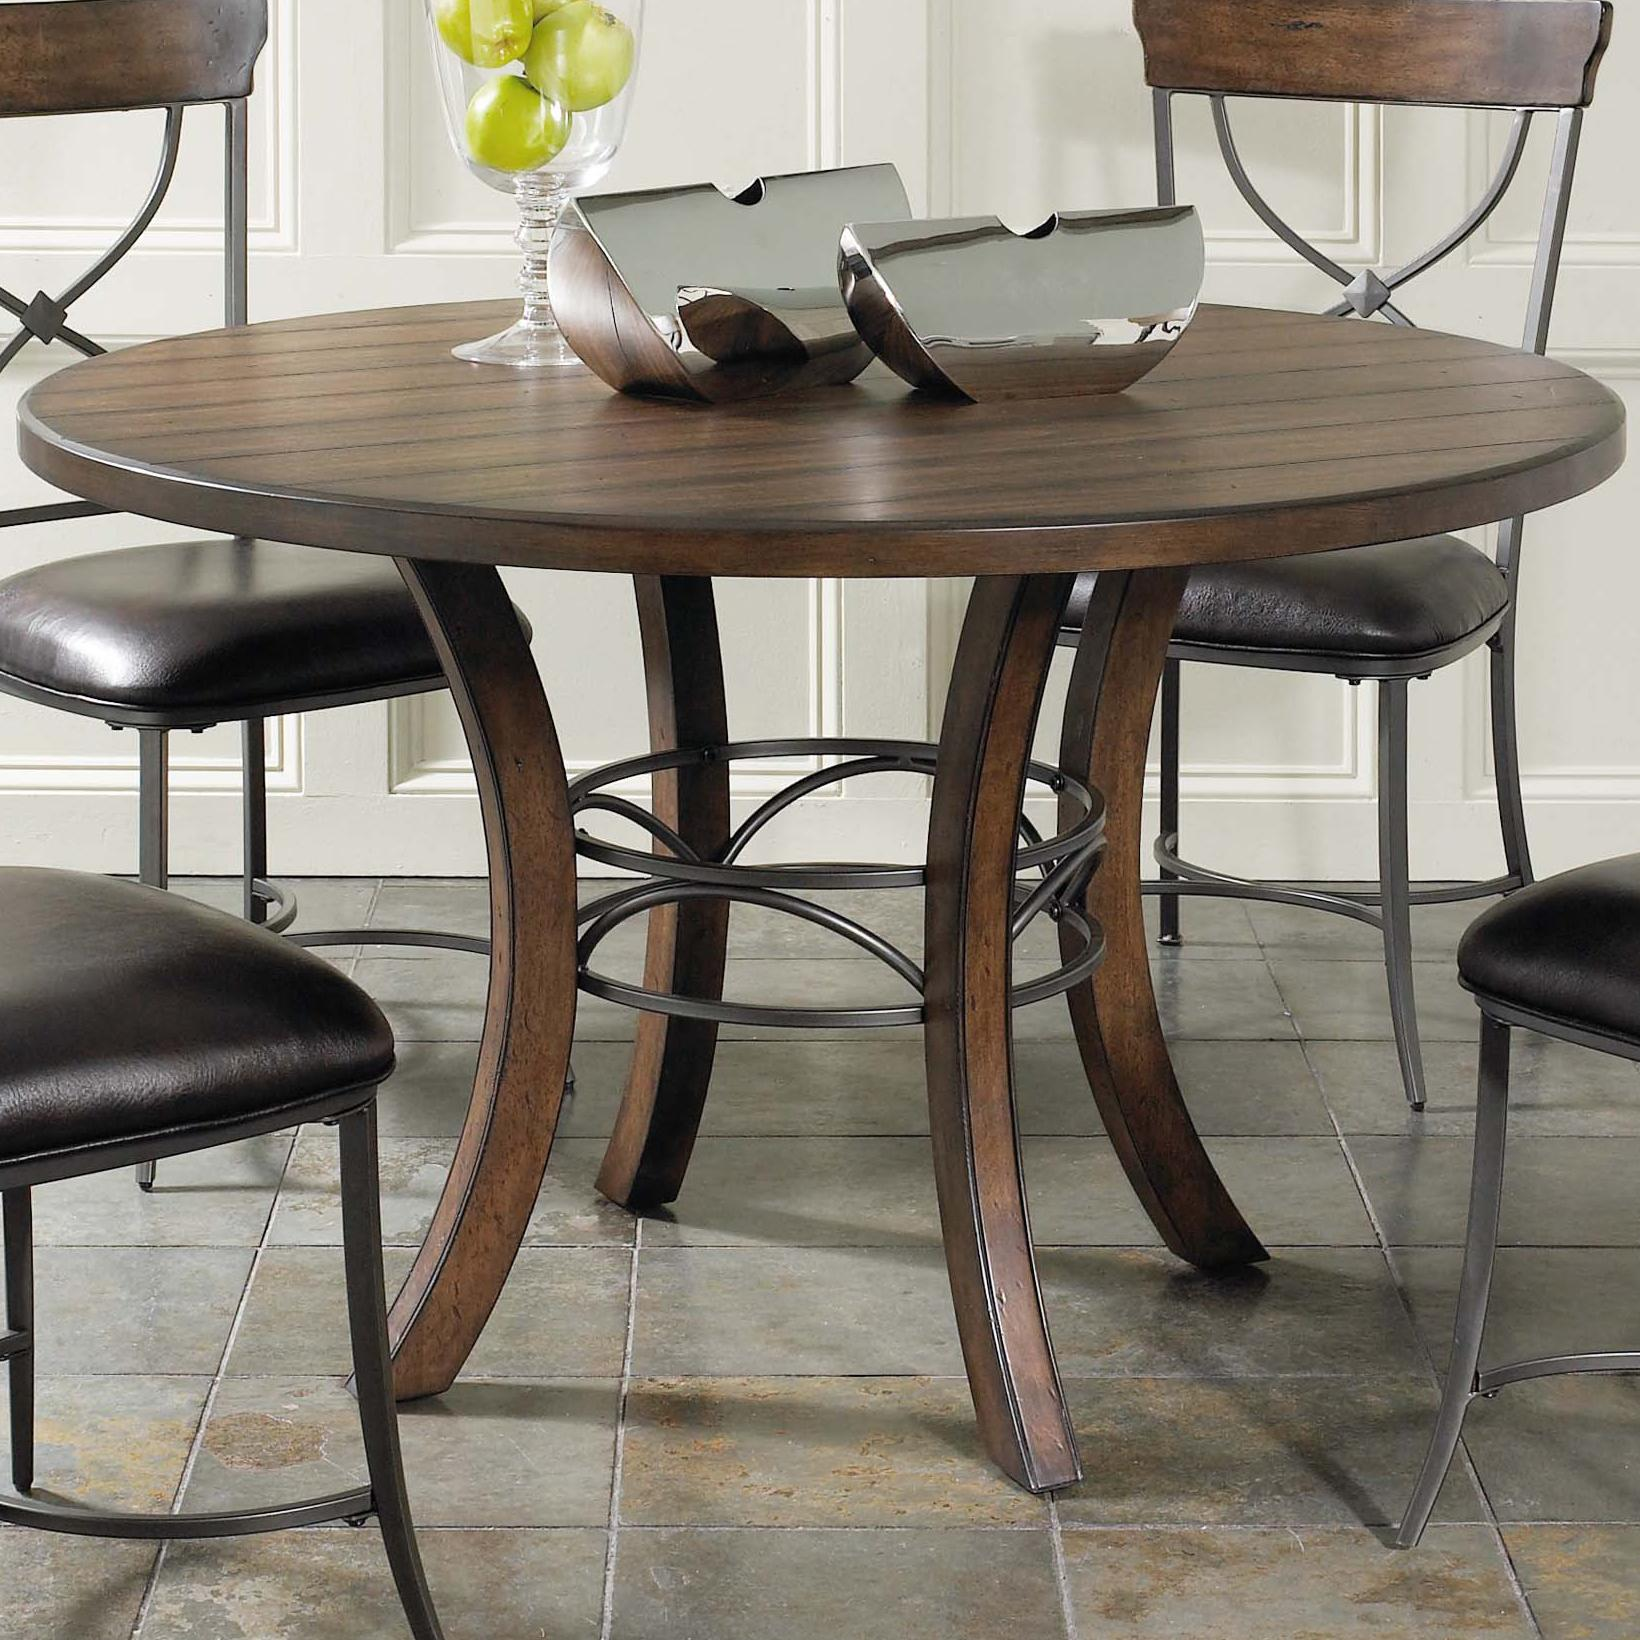 Hillsdale cameron round wood dining table with metal acent for Wooden kitchen table